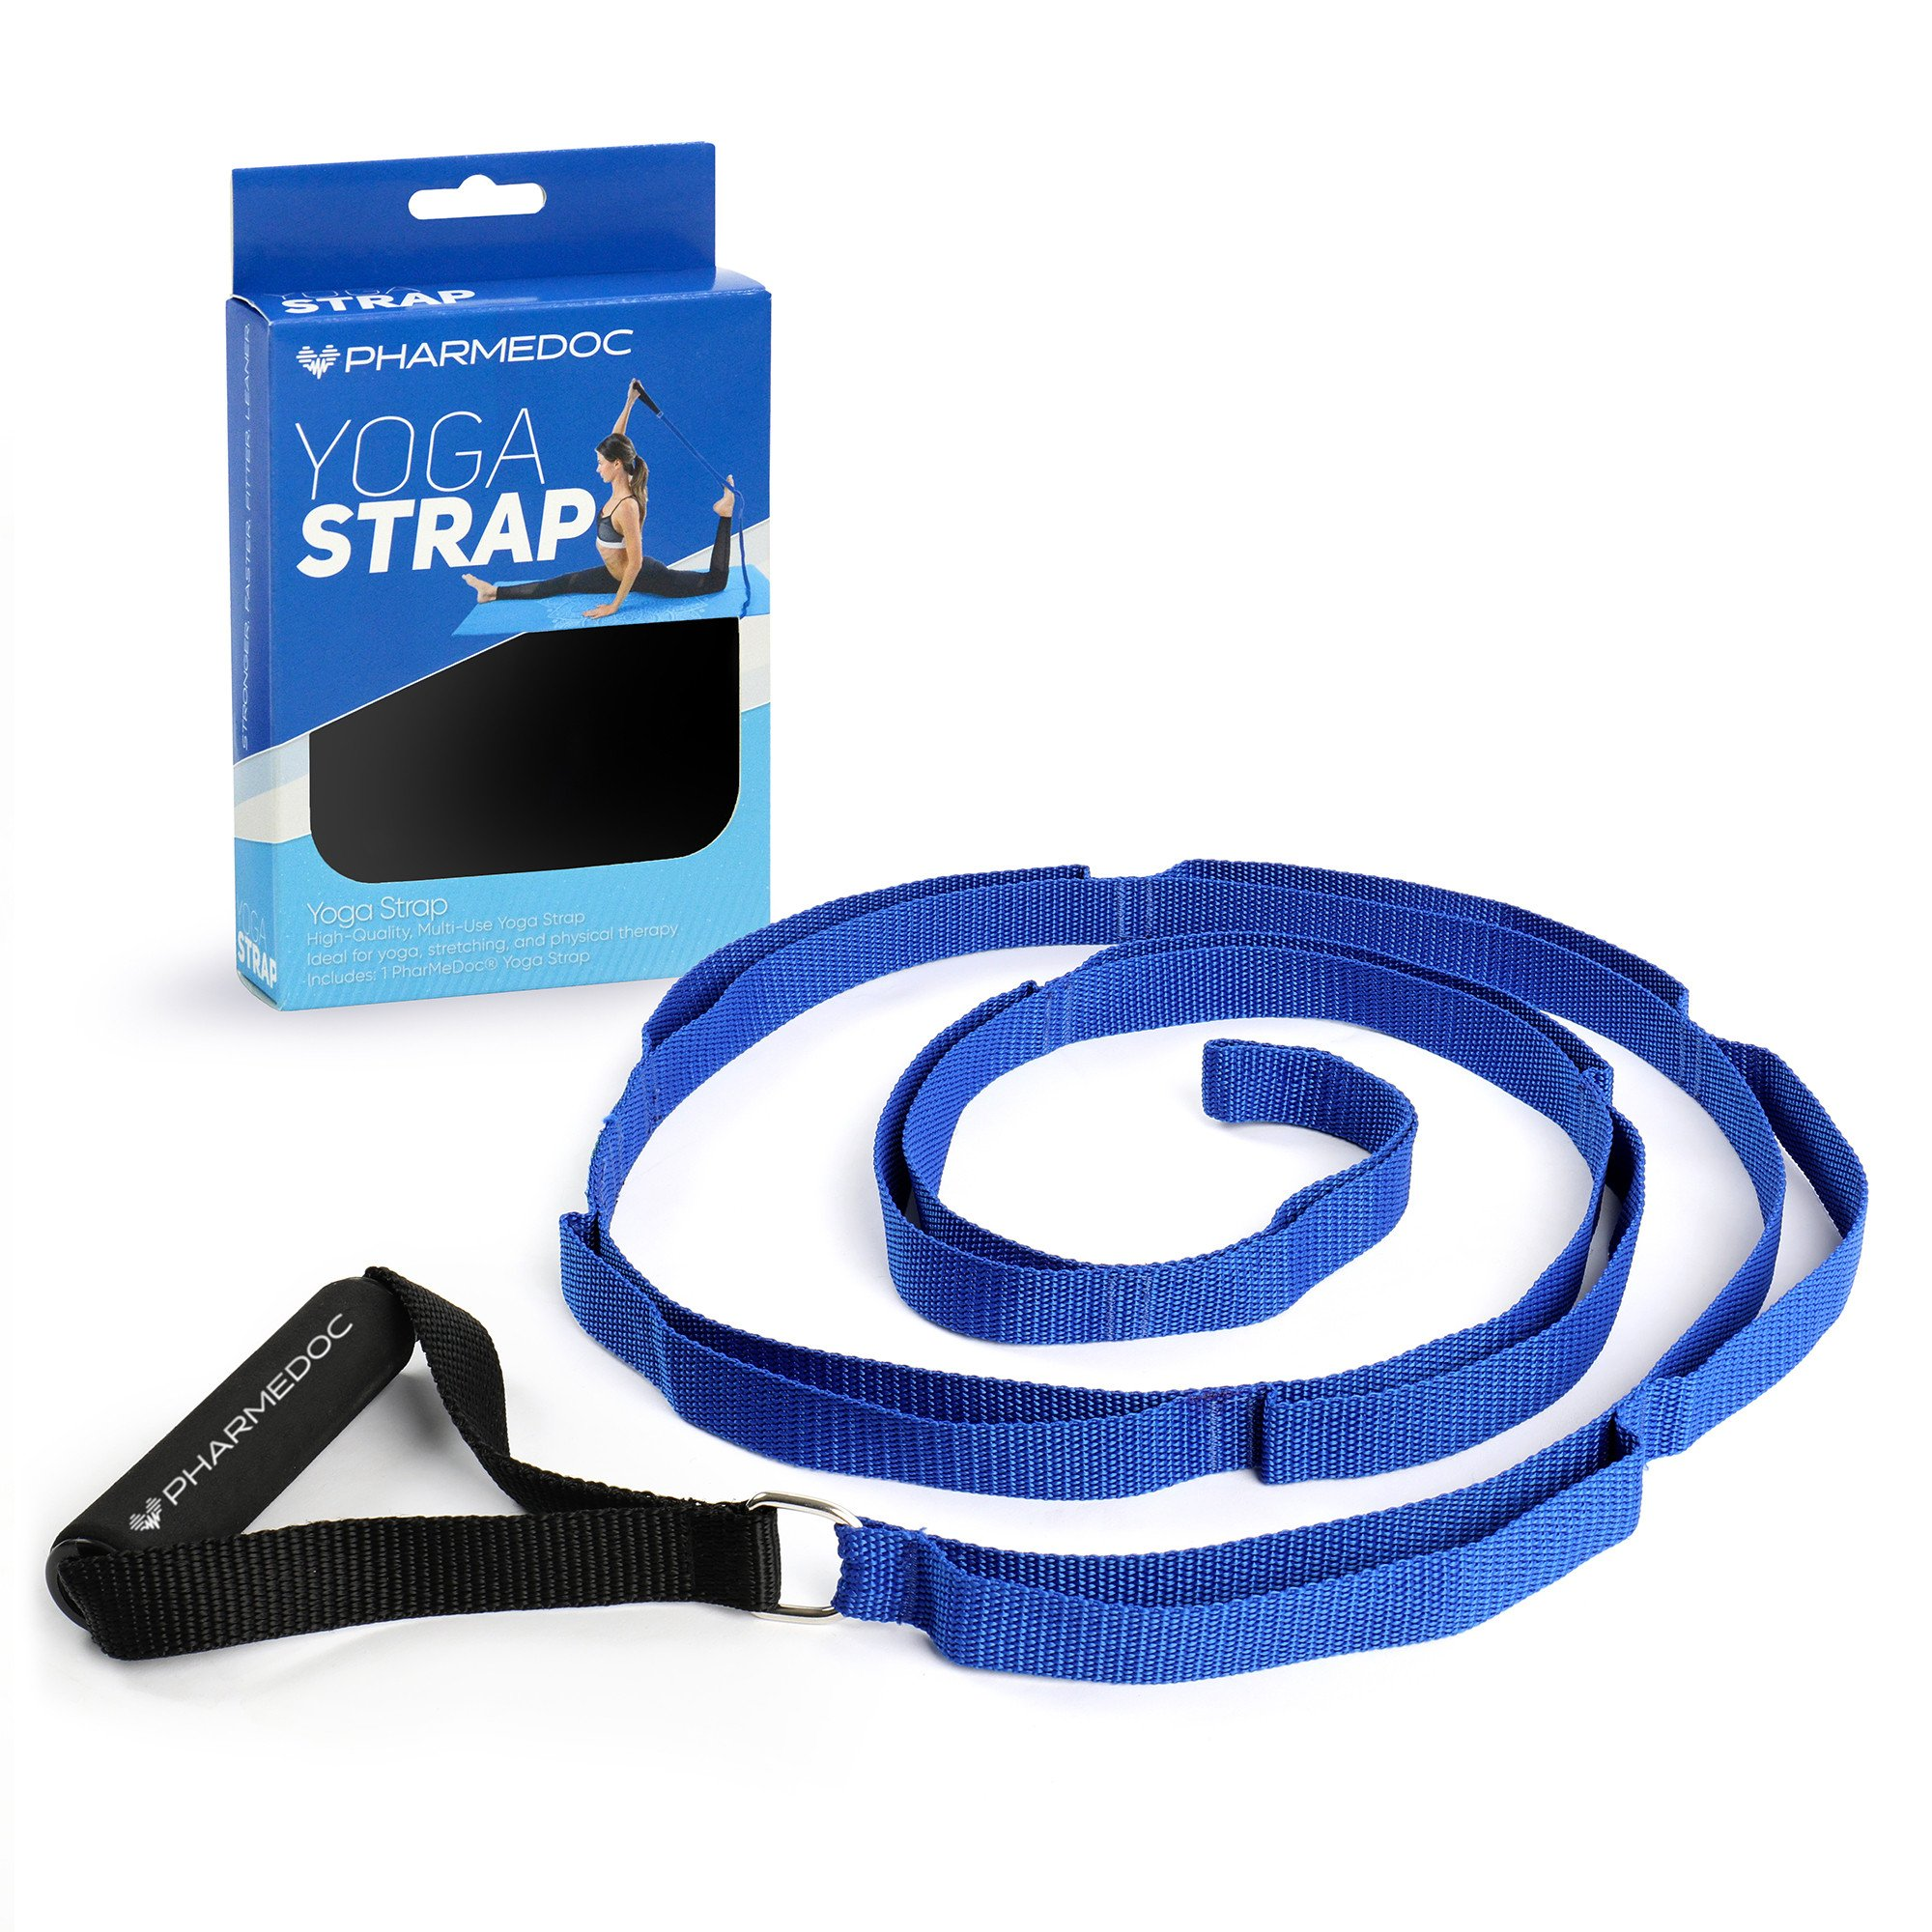 Yoga Strap with Loops and Handle - Stretching Strap & Hamstring Stretcher for Yoga, Exercise, Fitness